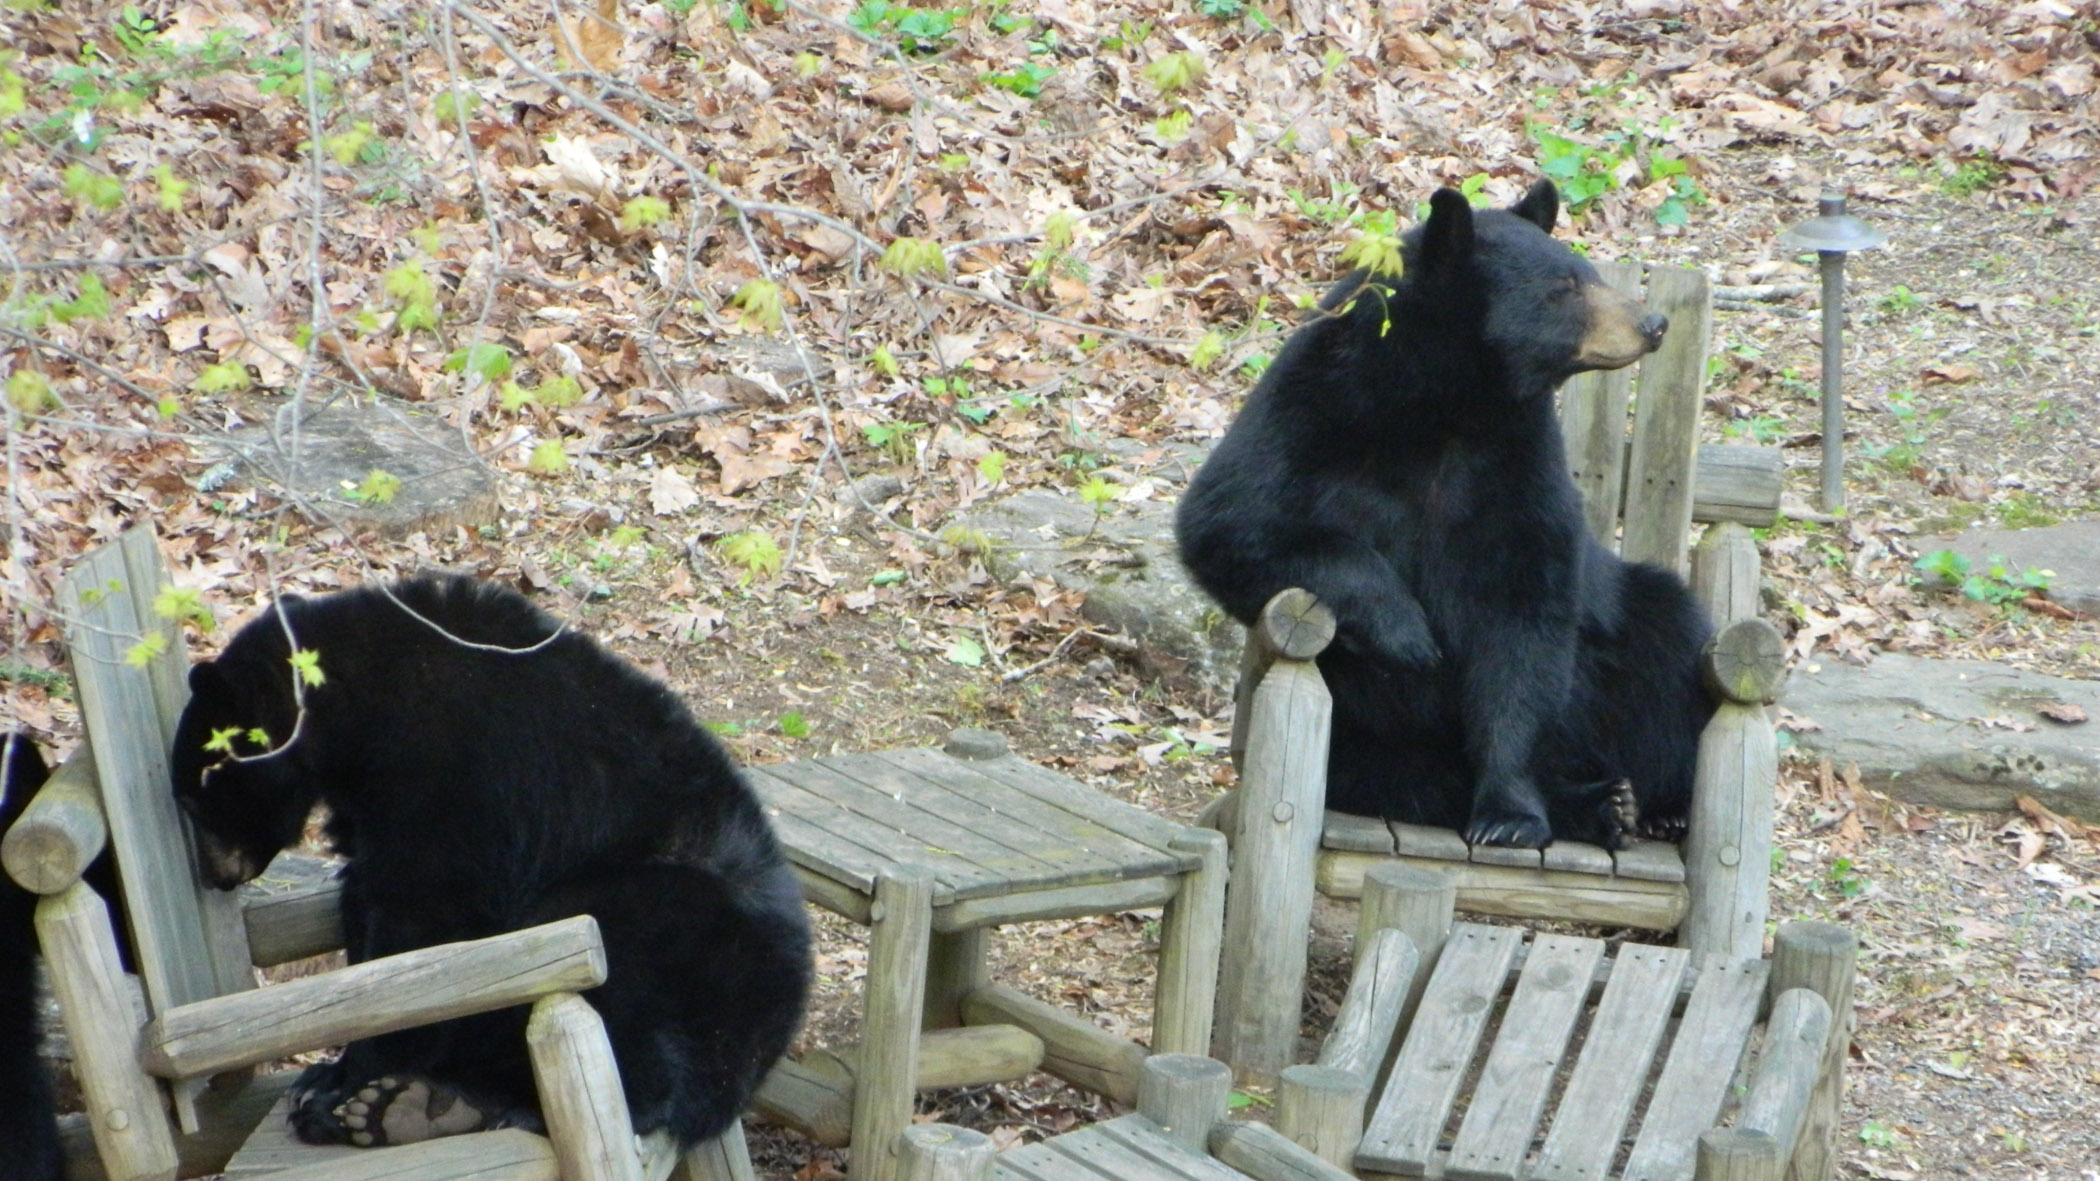 Marketers: Bears like chairs, especially these Asheville chairs